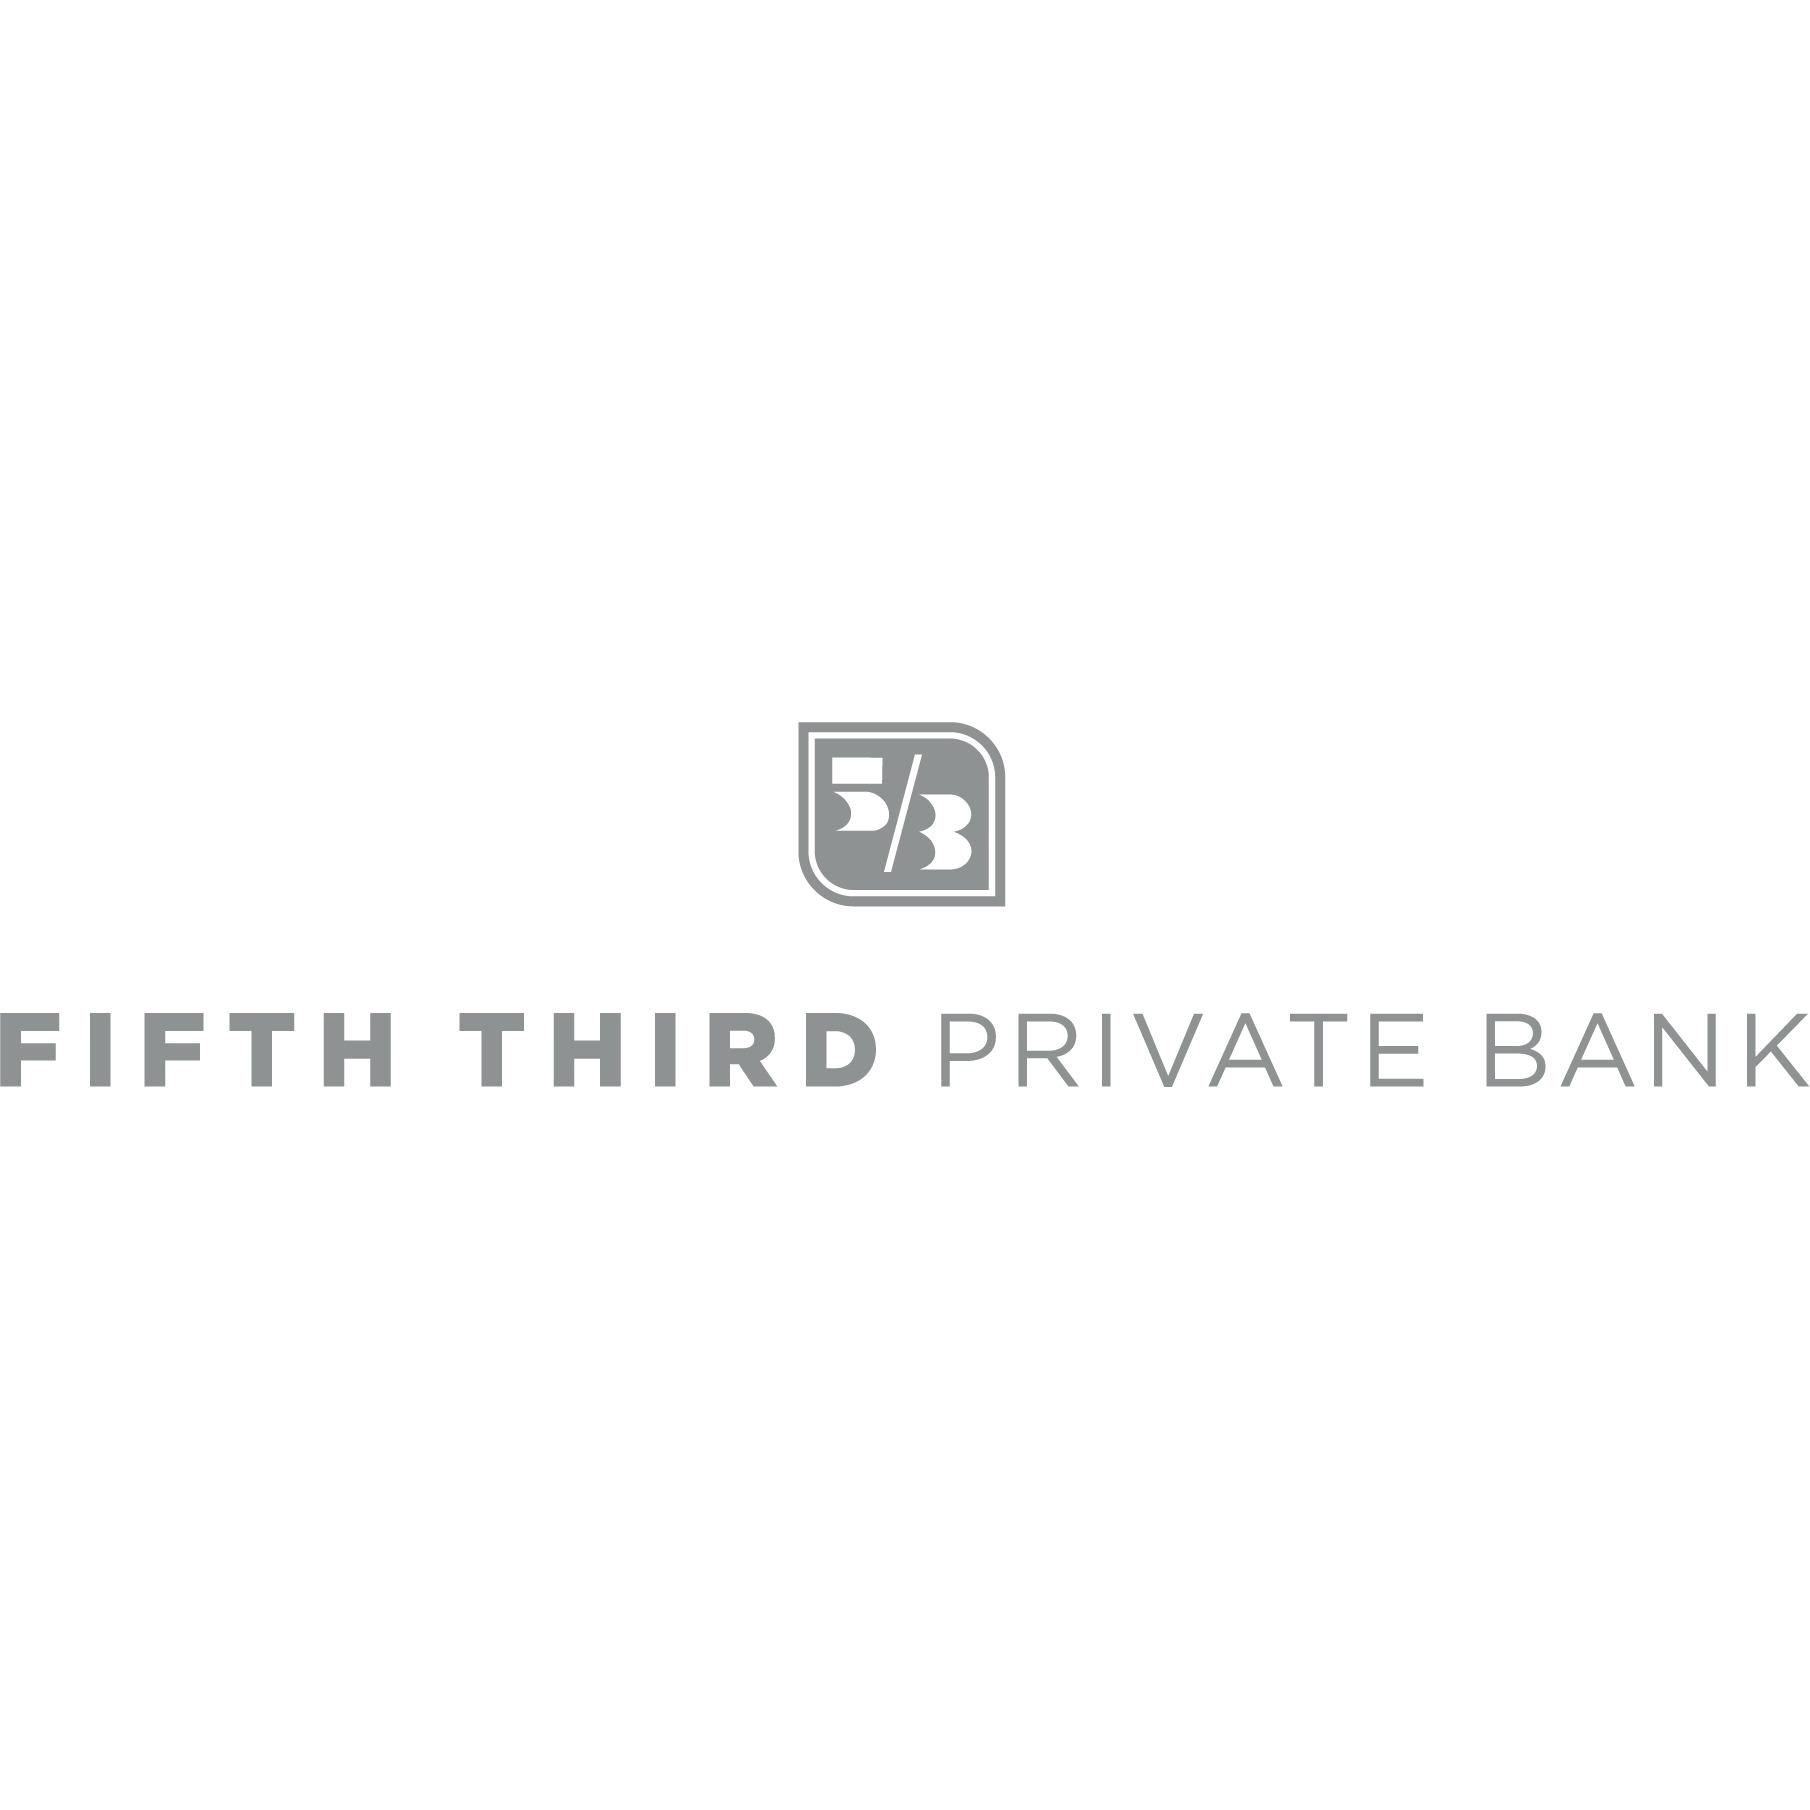 Fifth Third Private Bank - Michael Donovan